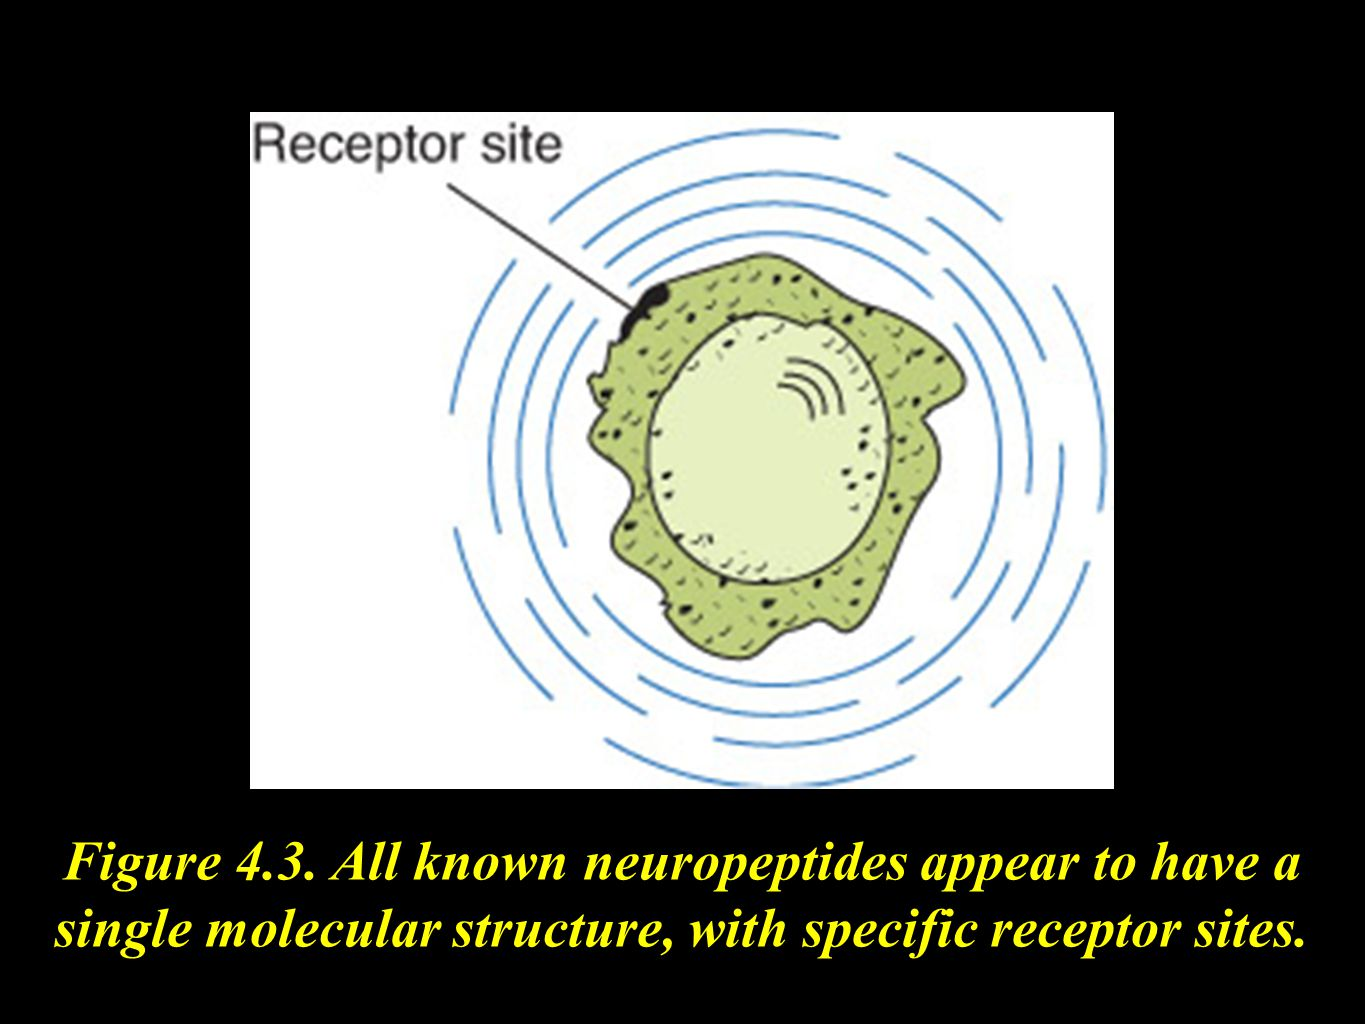 Figure 4.3. All known neuropeptides appear to have a single molecular structure, with specific receptor sites.